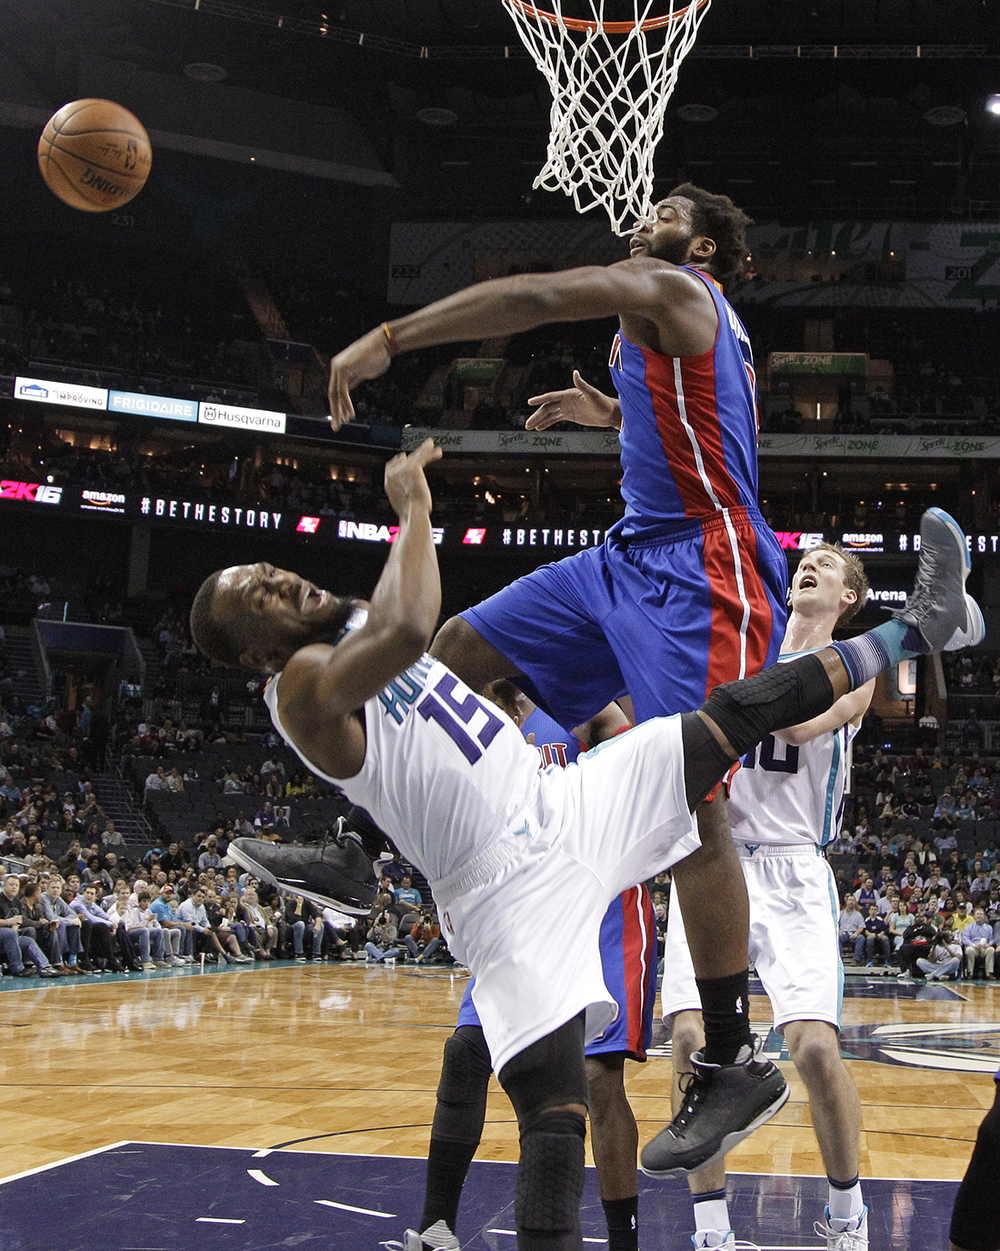 Detroit Pistons' Andre Drummond (0) blocks a shot by Charlotte Hornets' Kemba Walker (15) in the second half of an NBA basketball game in Charlotte, N.C., Monday, Dec. 7, 2015. (AP Photo/Chuck Burton)